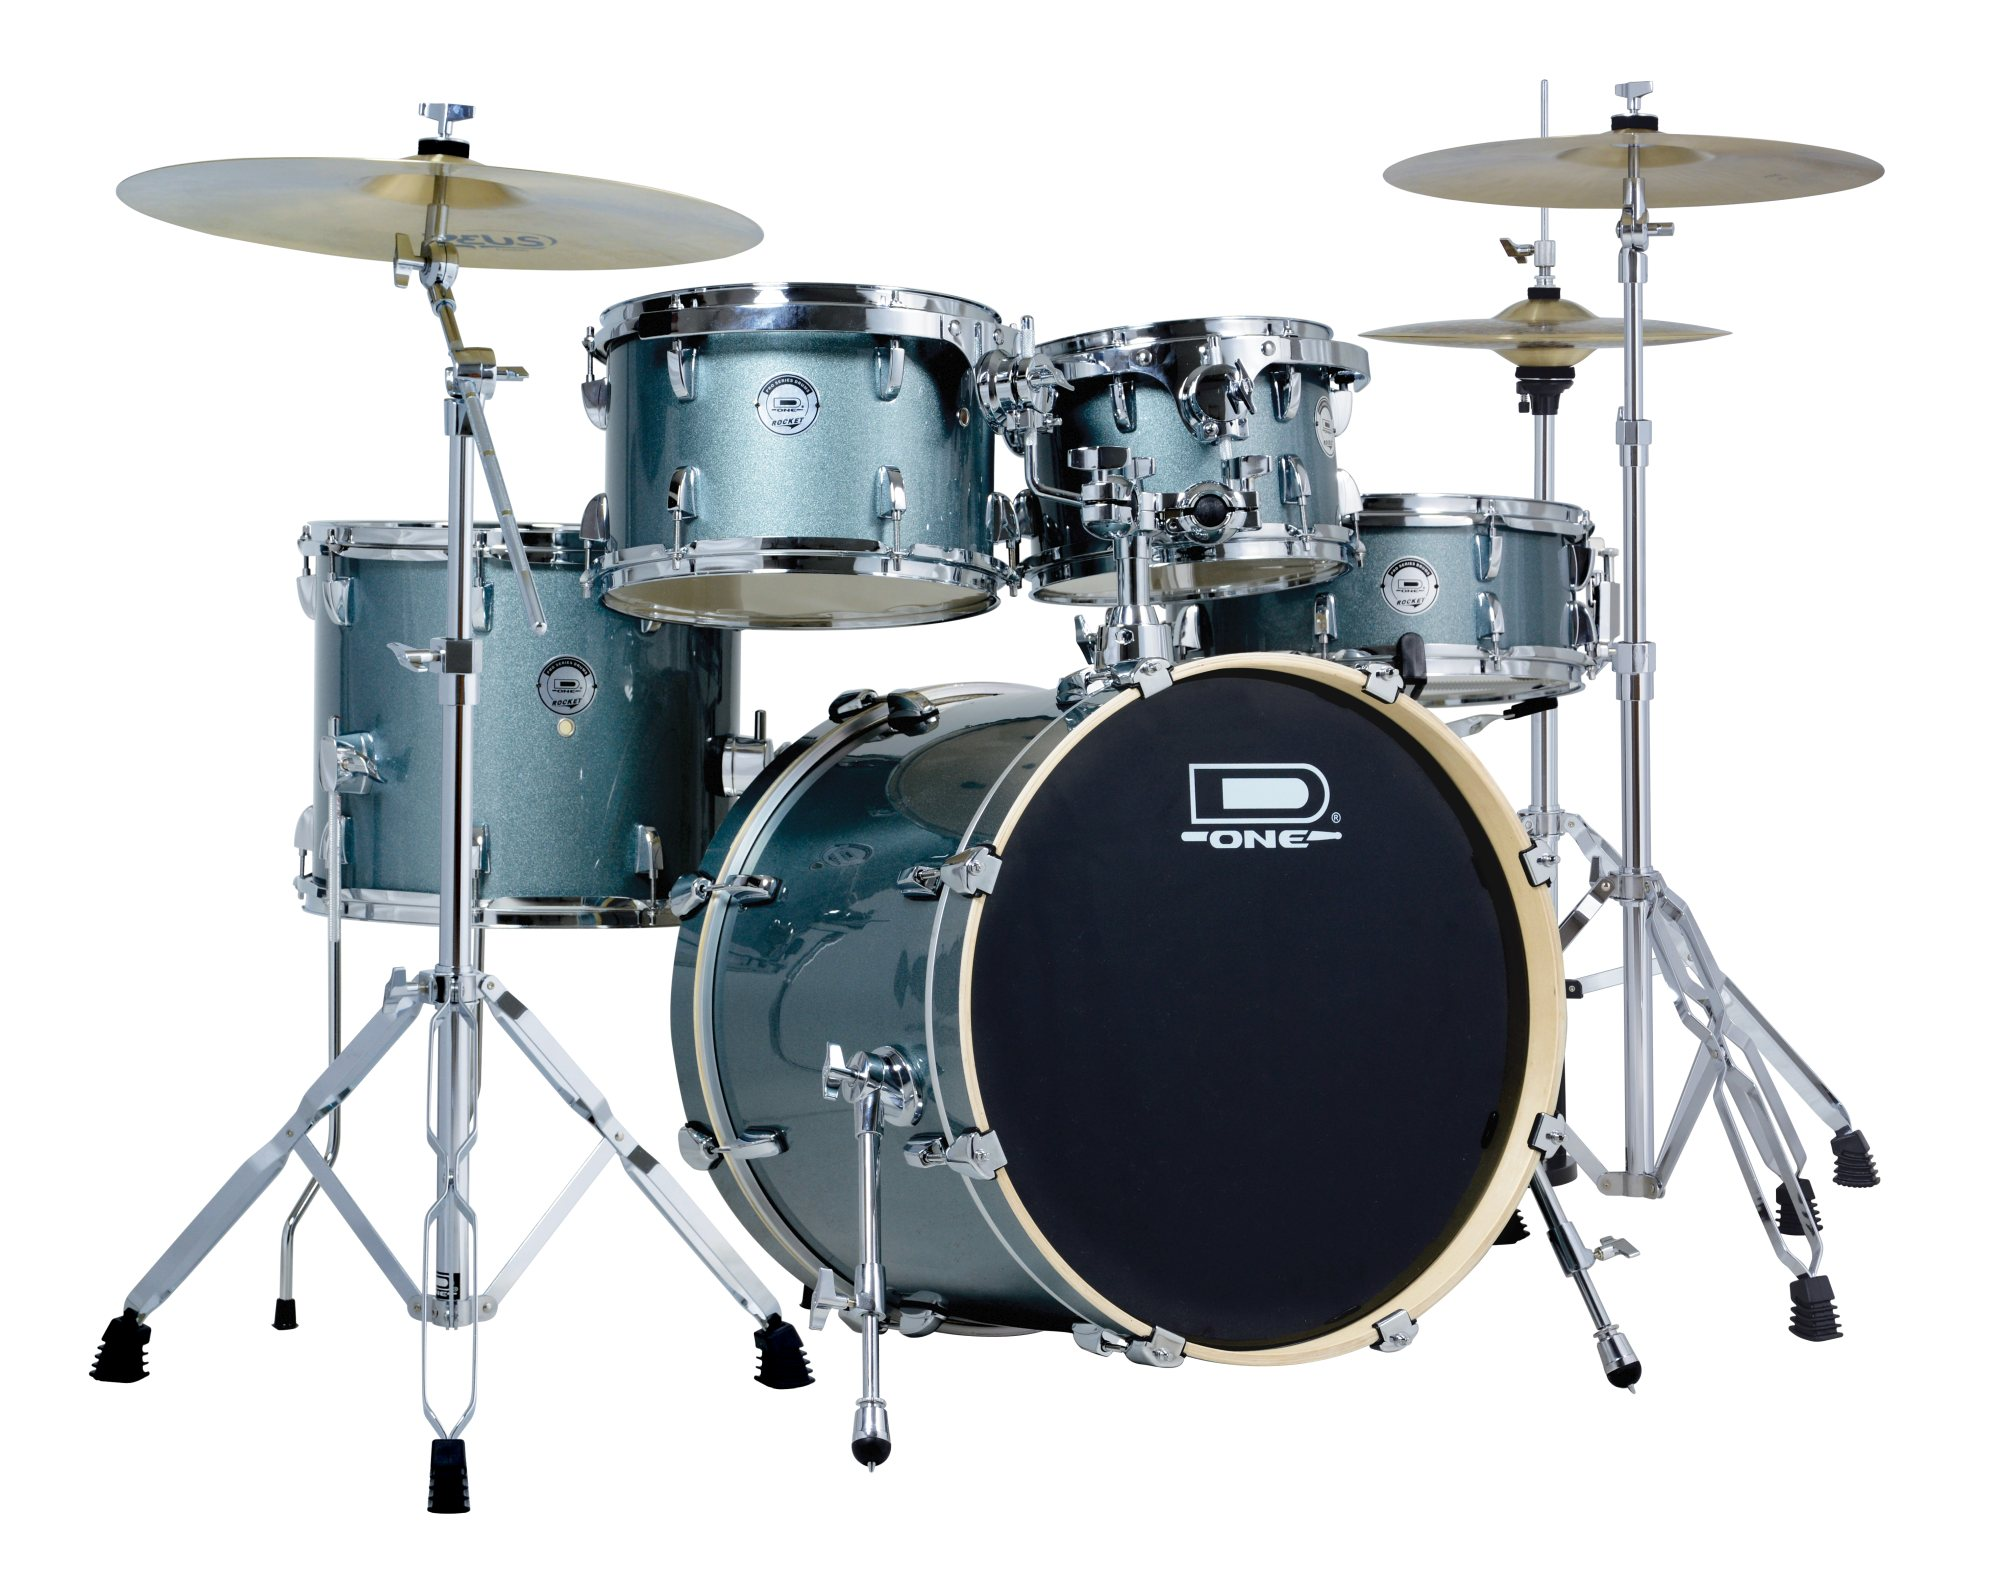 Bateria D.one Rocket Dr20 Sg Space Grey